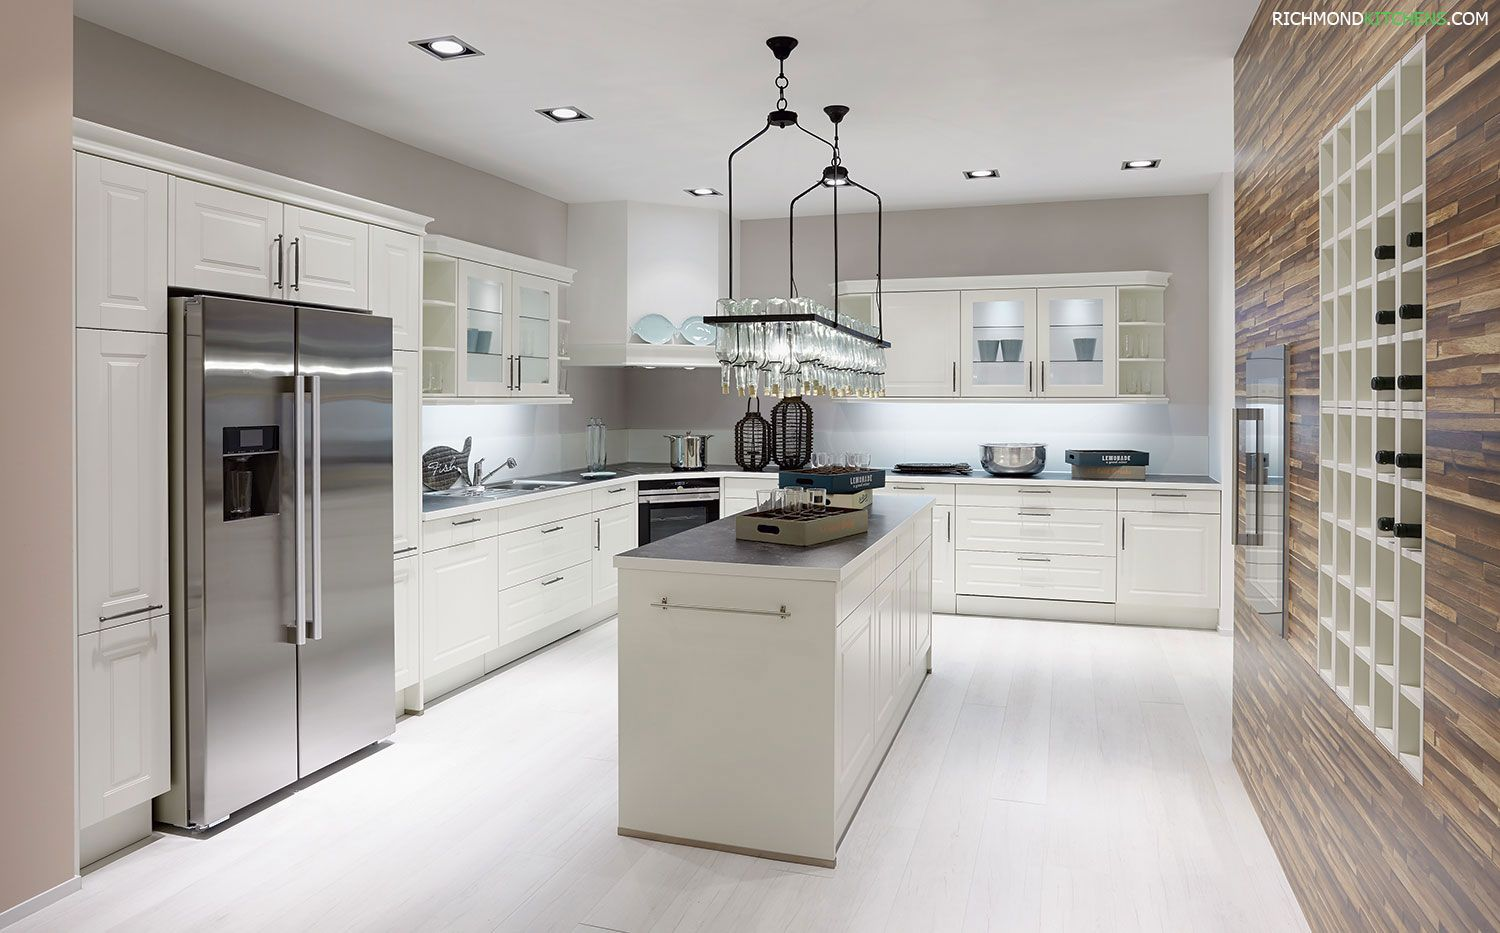 Charmant Richmond Kitchens | Shaker Kitchens